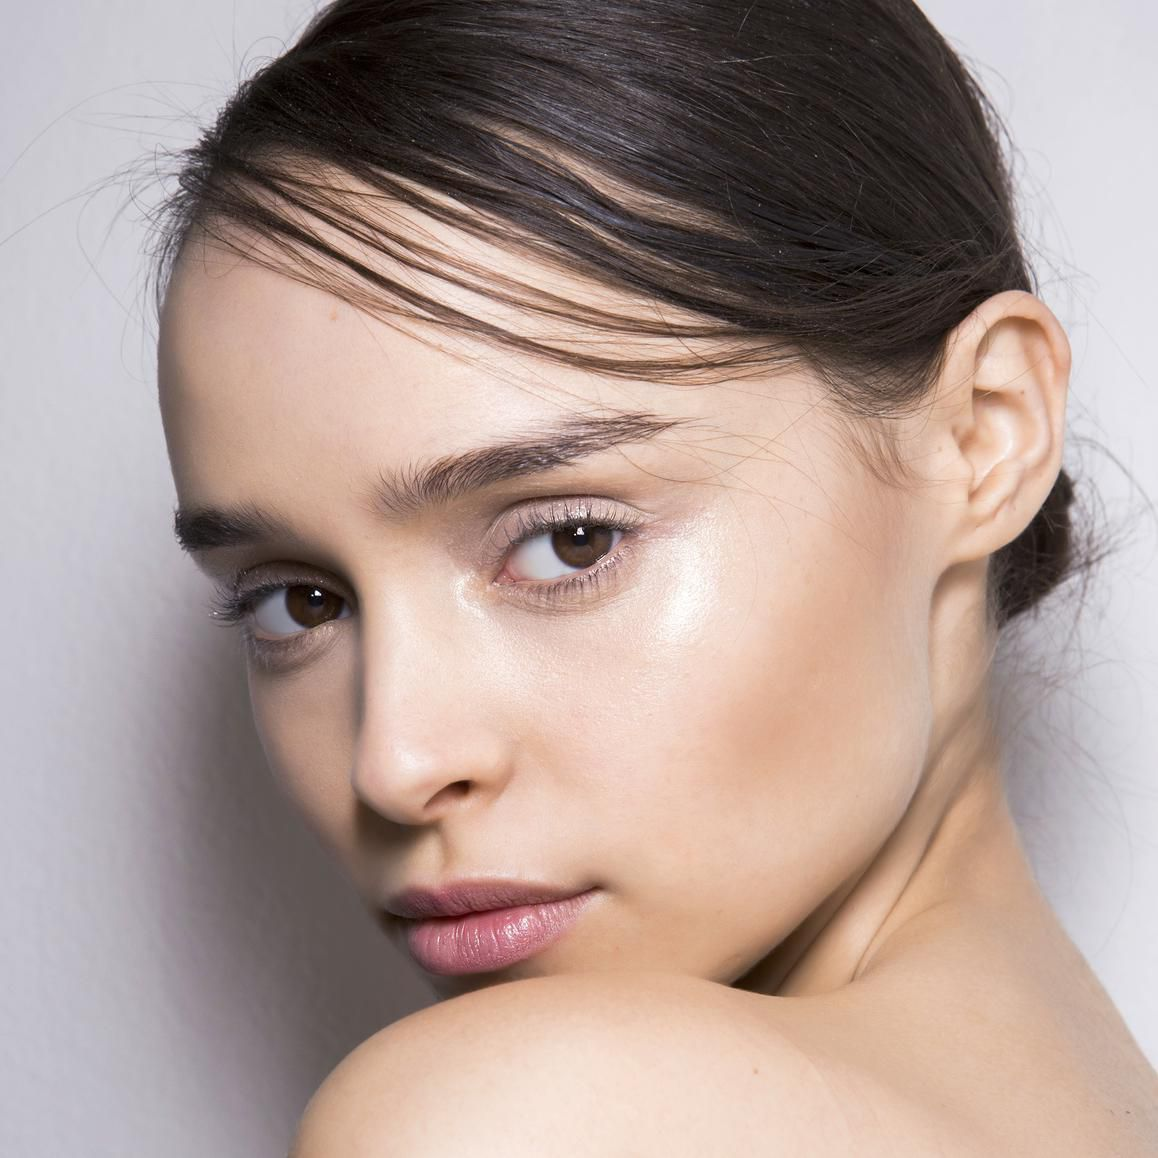 6 Easy Ways to Get Gorgeous Skin Overnight